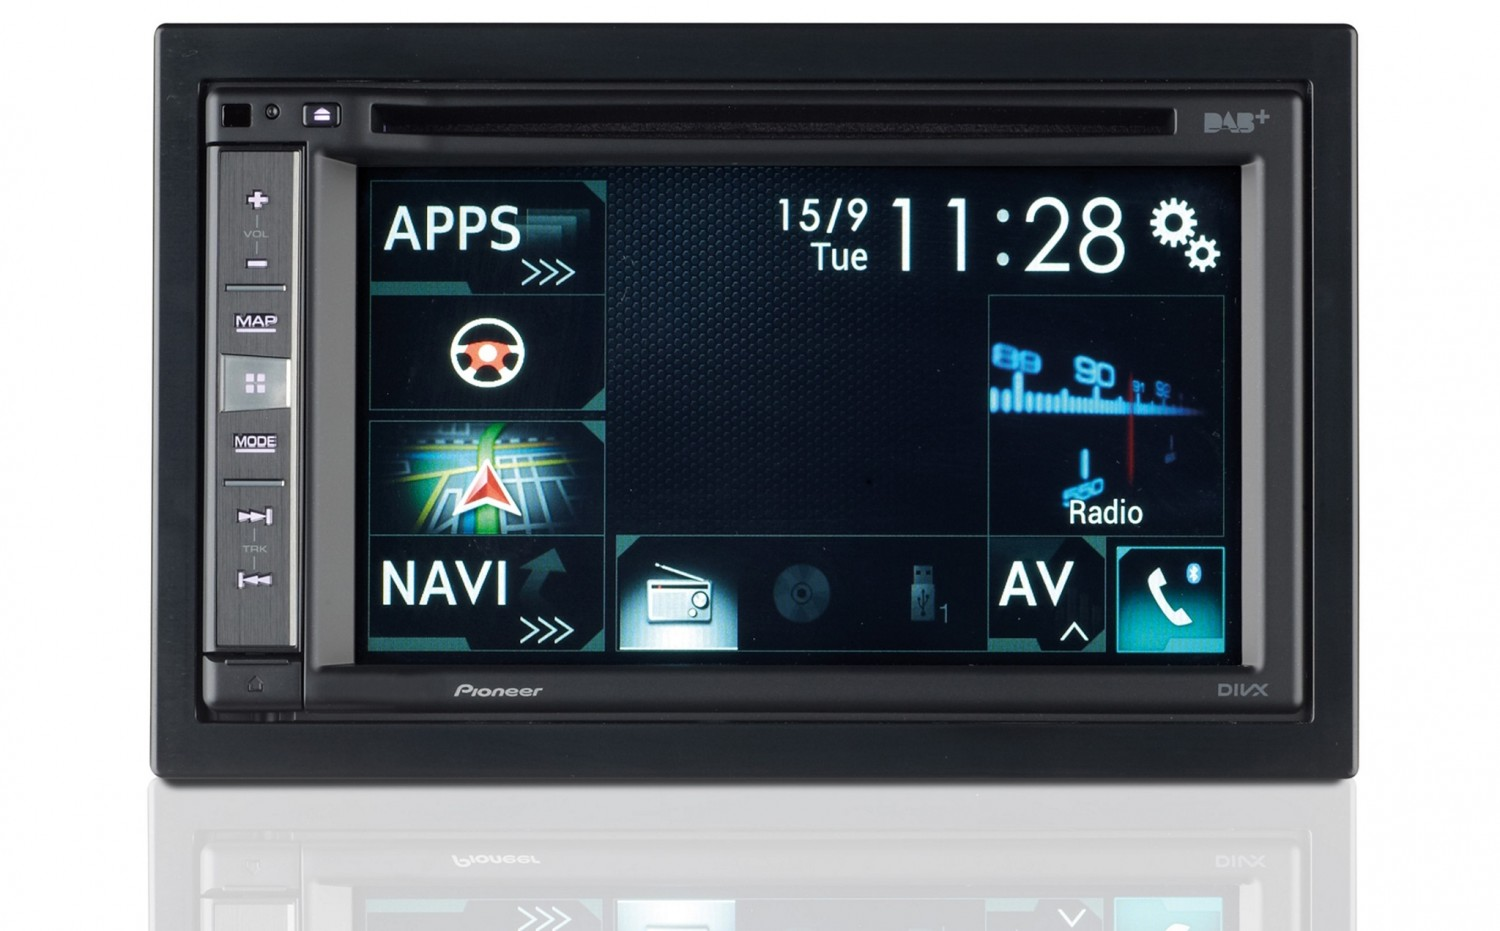 Test Naviceiver - Pioneer AVIC-F100DAB Camper - sehr gut - Seite 10